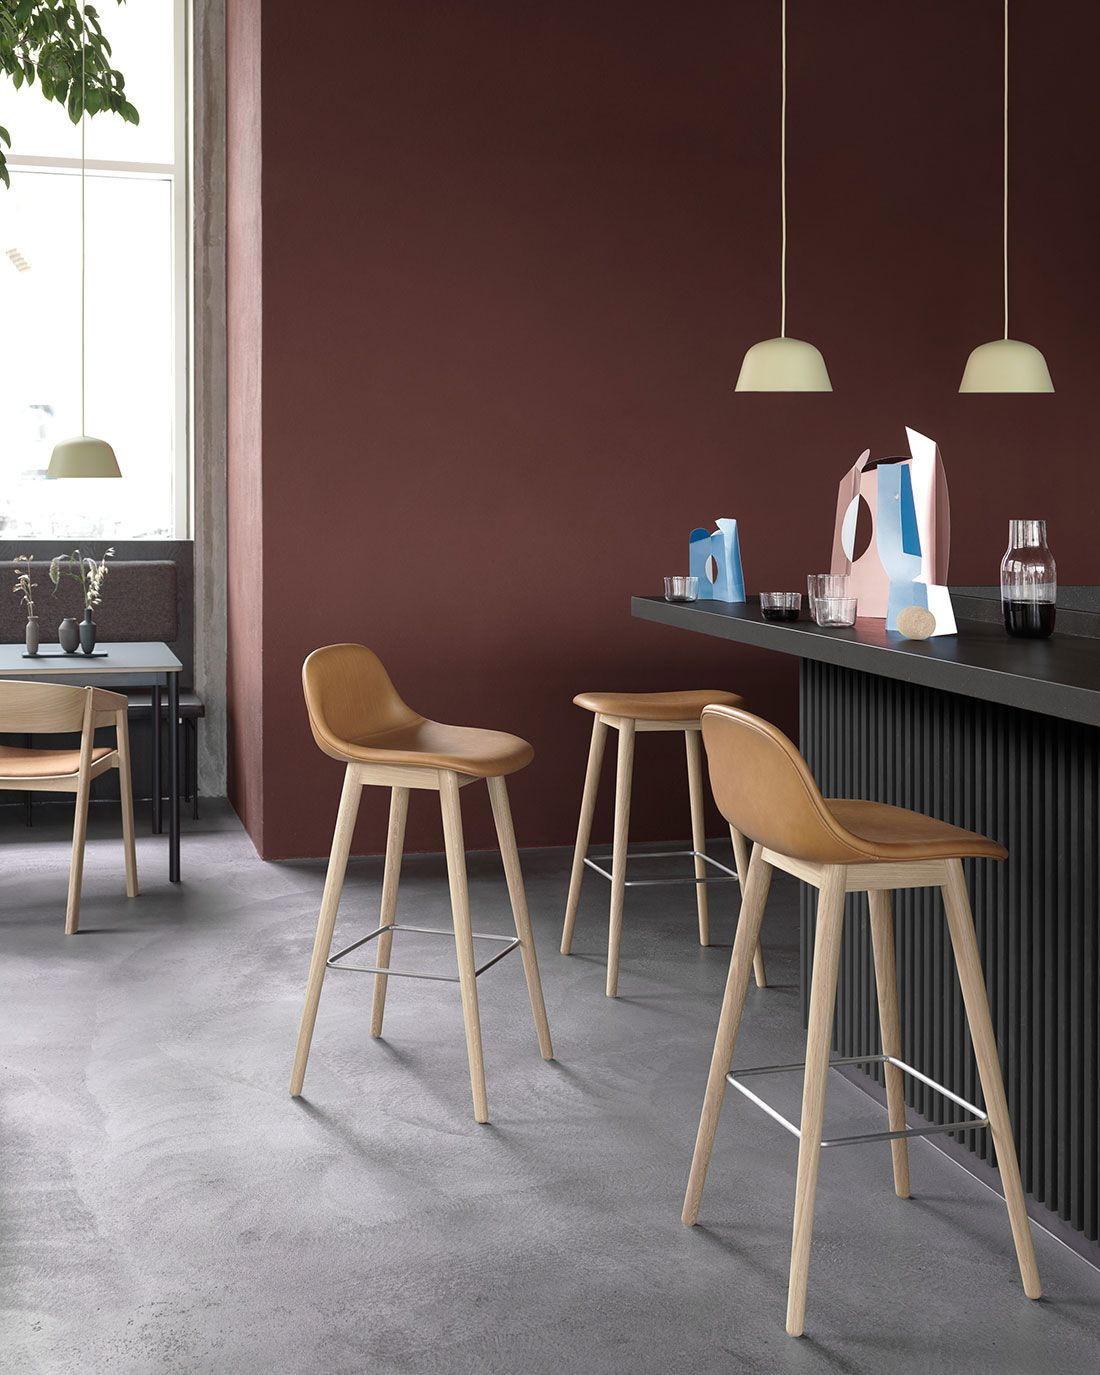 Scandinavian interior inspiration from muuto with an expression that is both comfortable and harmonious